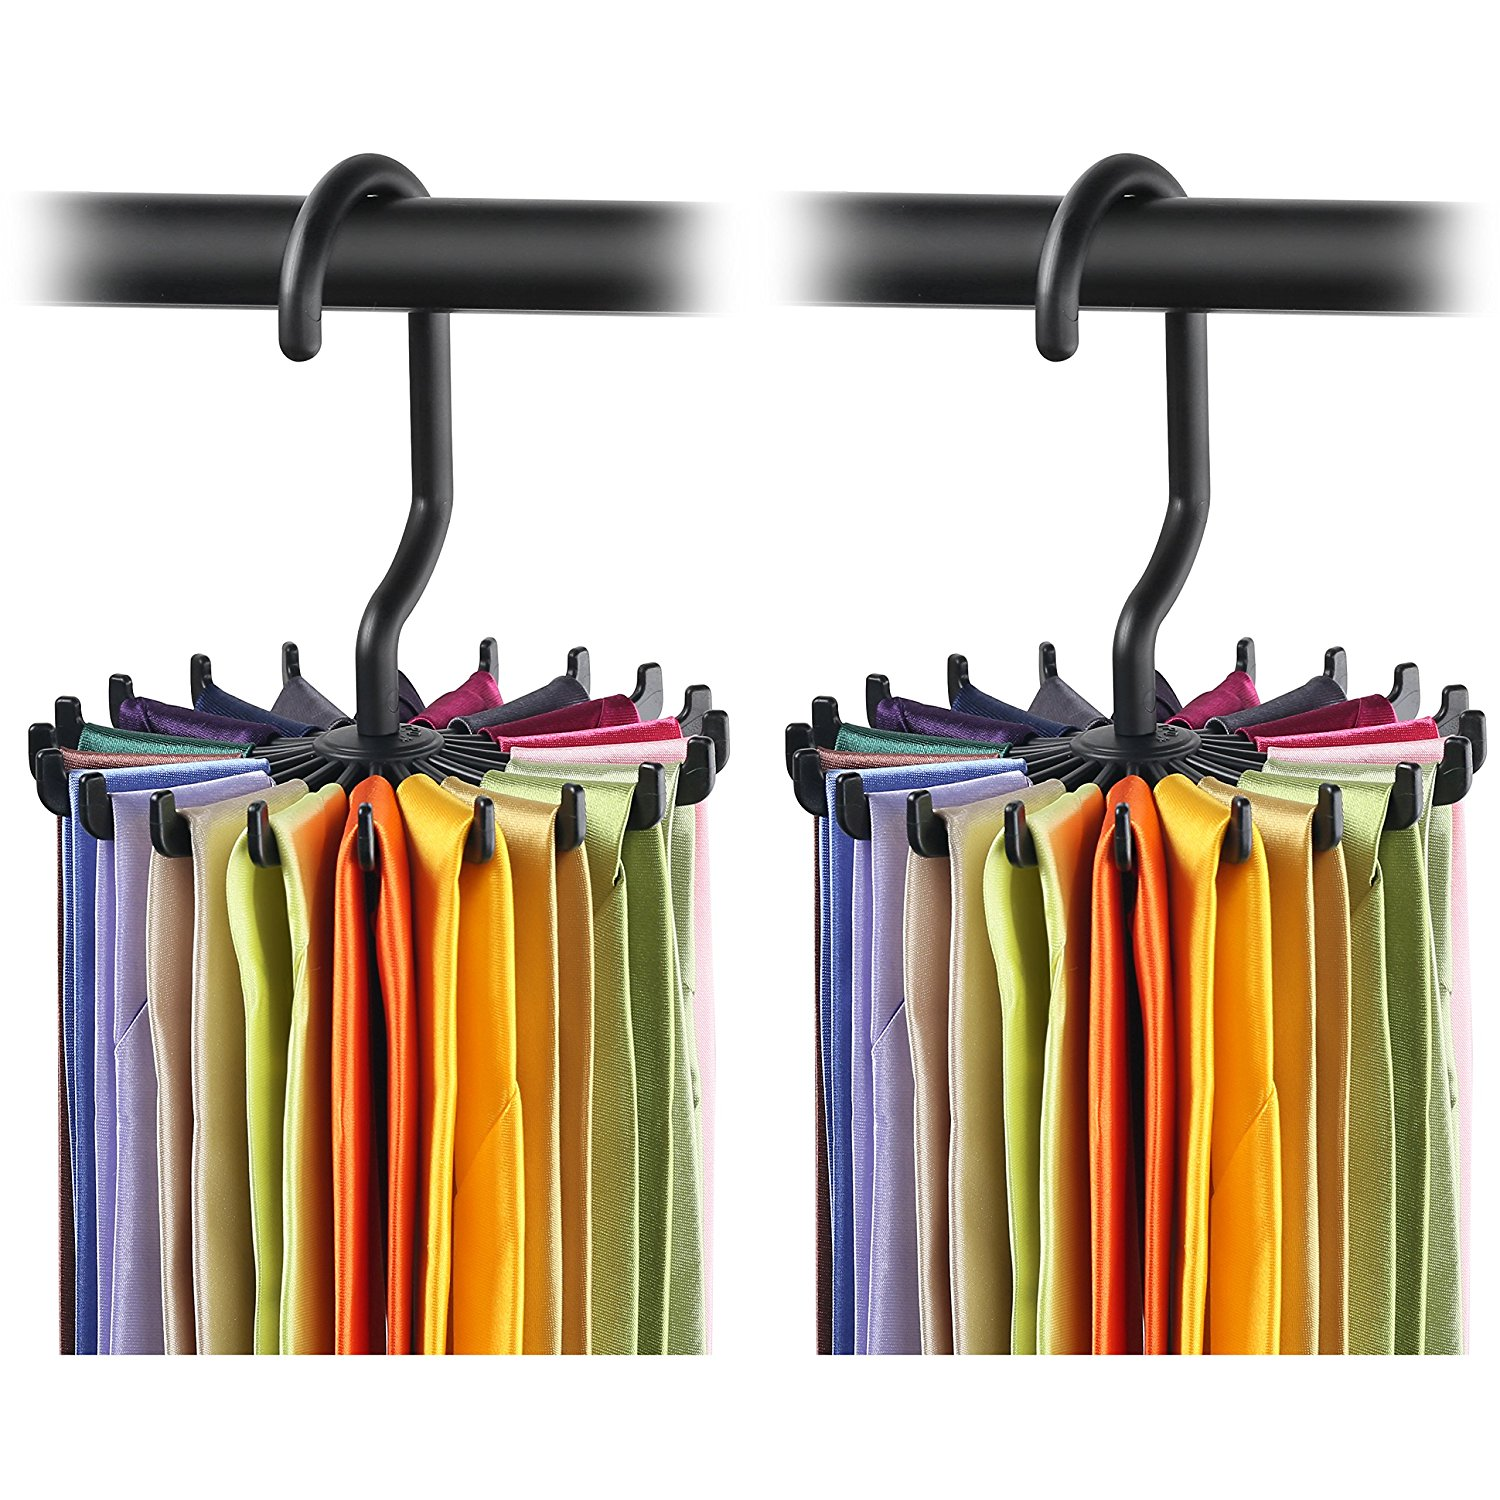 "IPOW 2 Pack 4.4"" Tie Rack Organizer Belt Hanger Adjustable Rotating 20 Hook Neck Ties Twirling Tie Holder Scarves Storage Hangers, Black,  Christmas Day Deal"